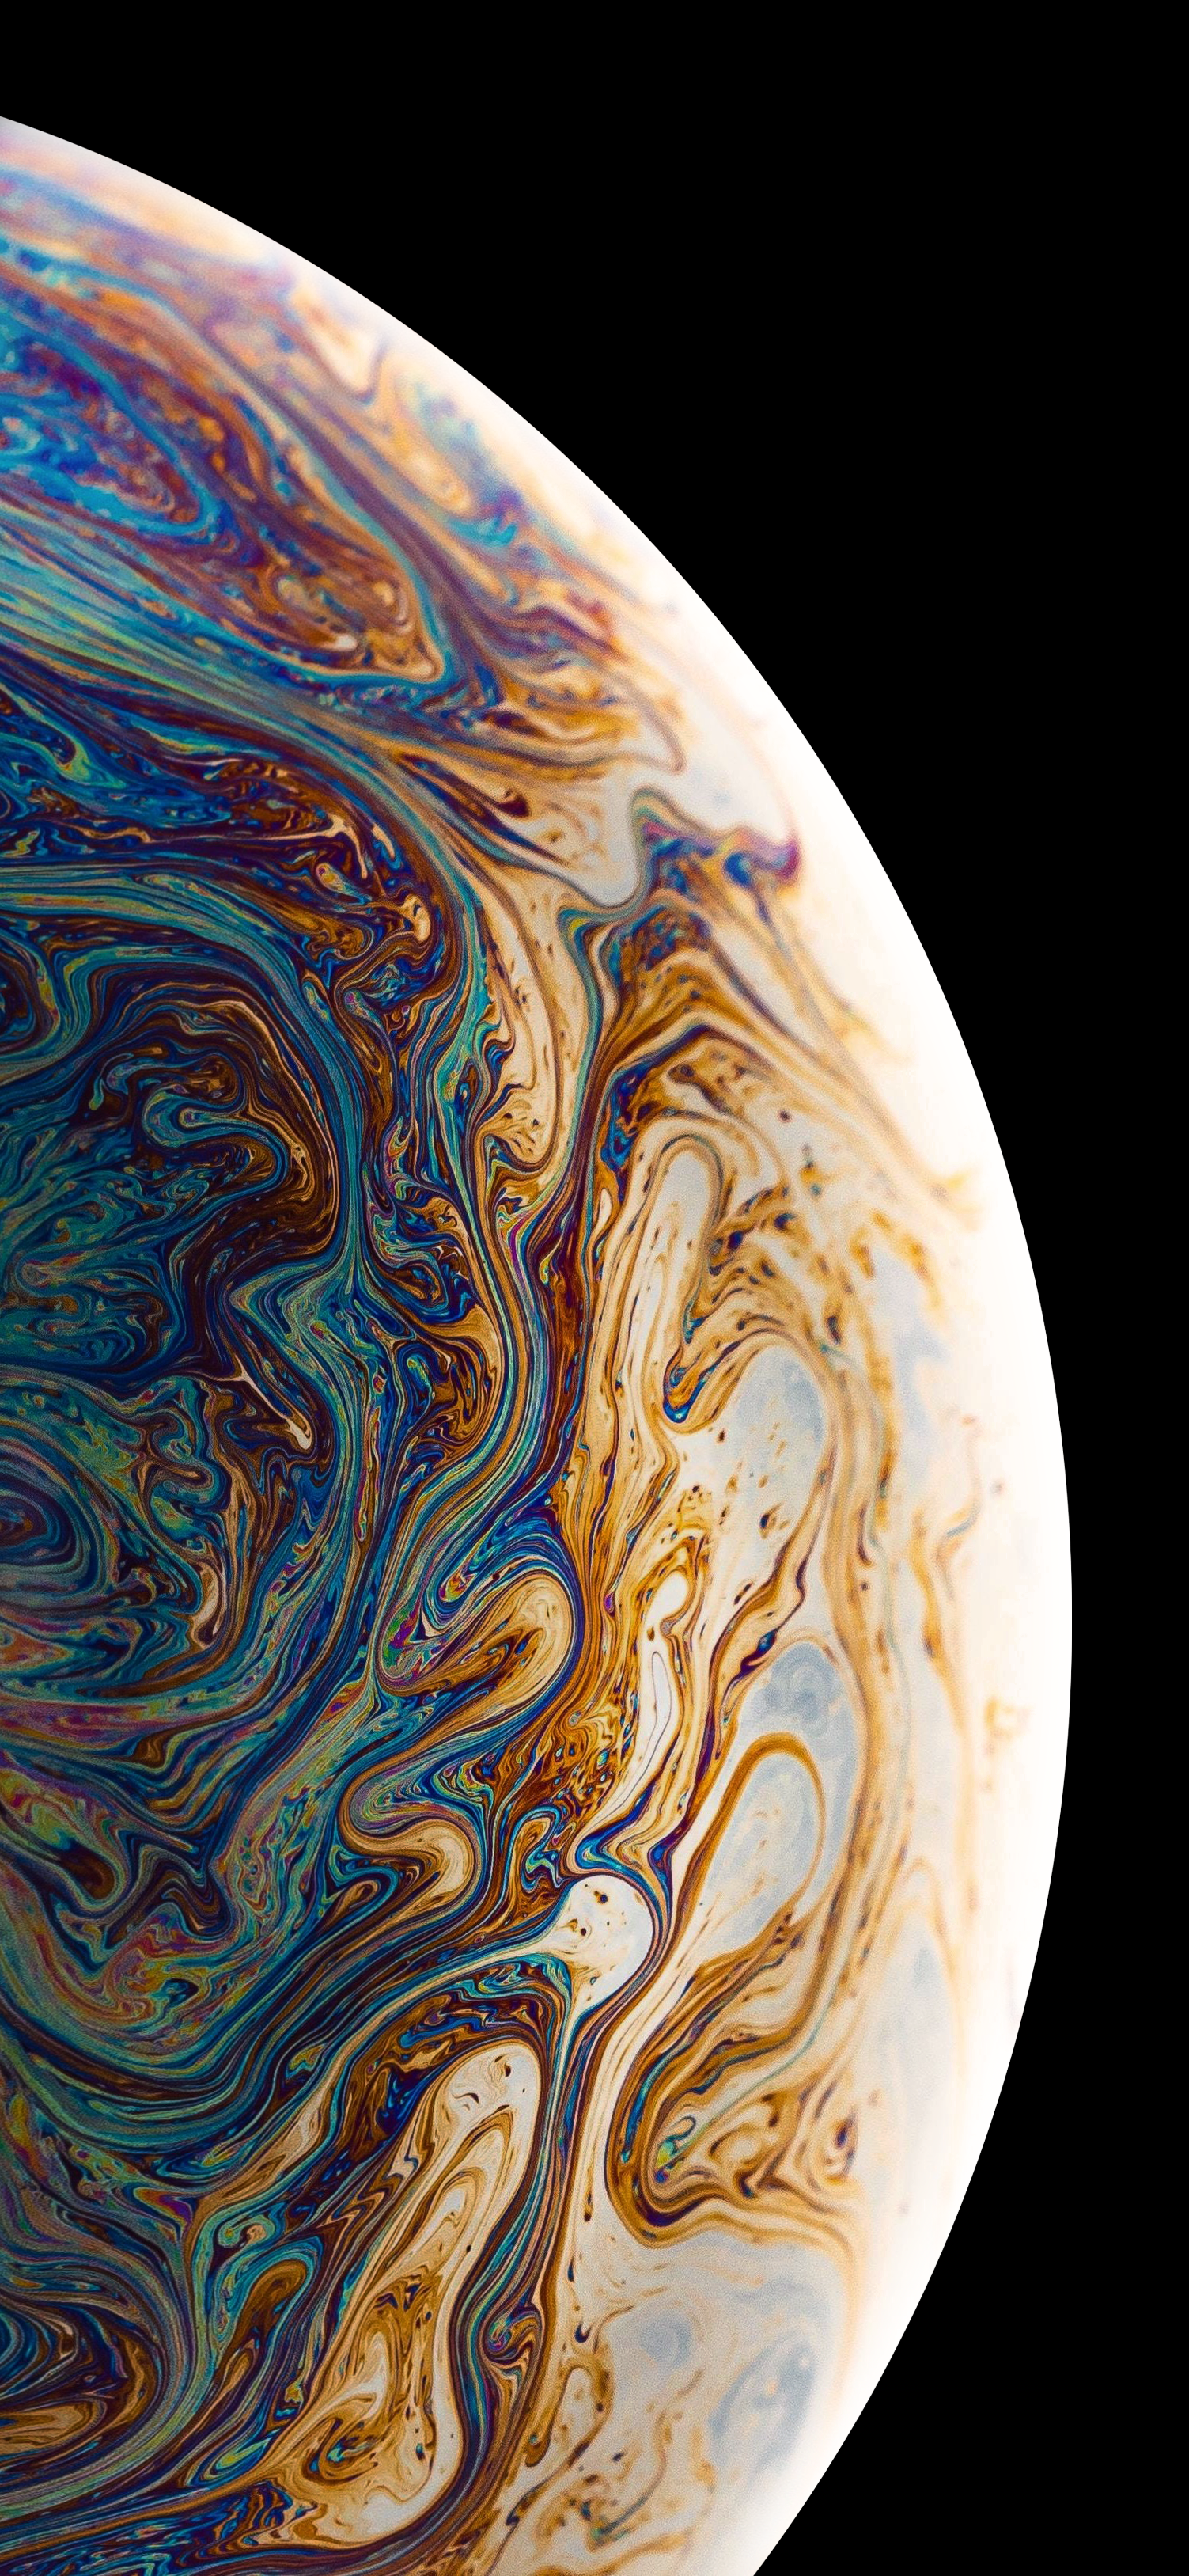 Ios 11 Wallpaper 4k Posted By Christopher Tremblay